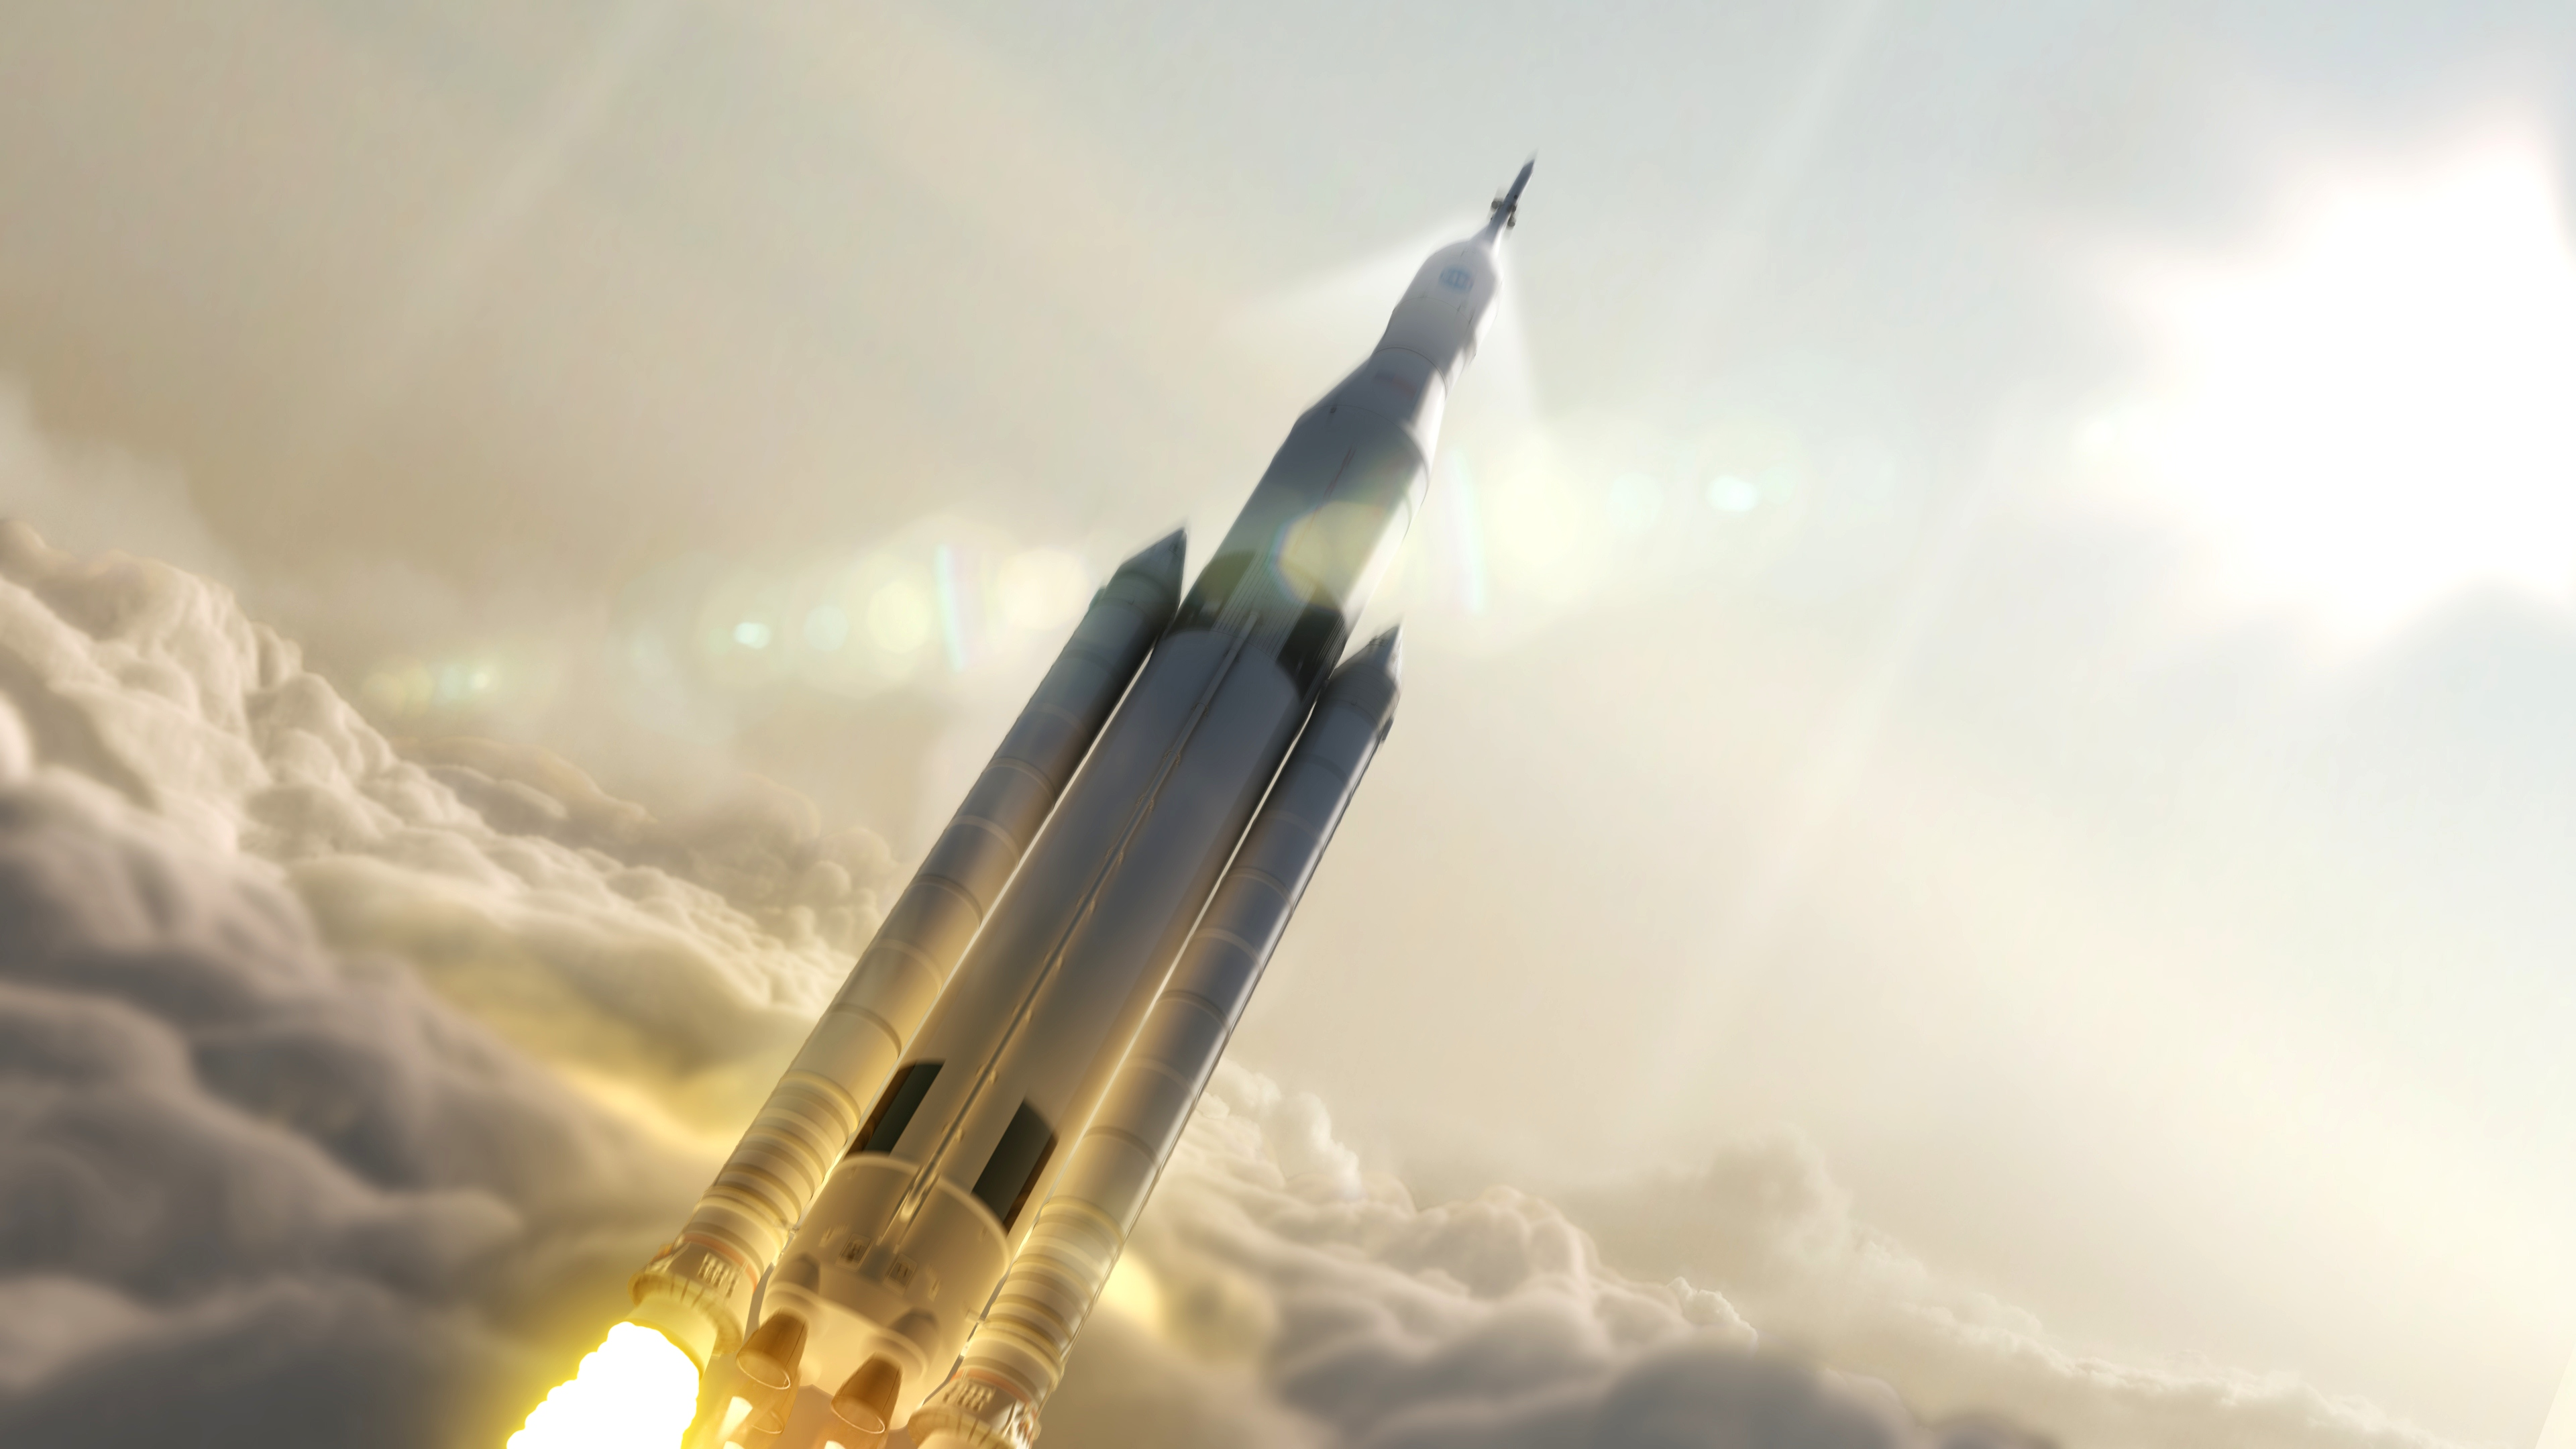 Space Launch System Rocket Clearing The Clouds Nasa S